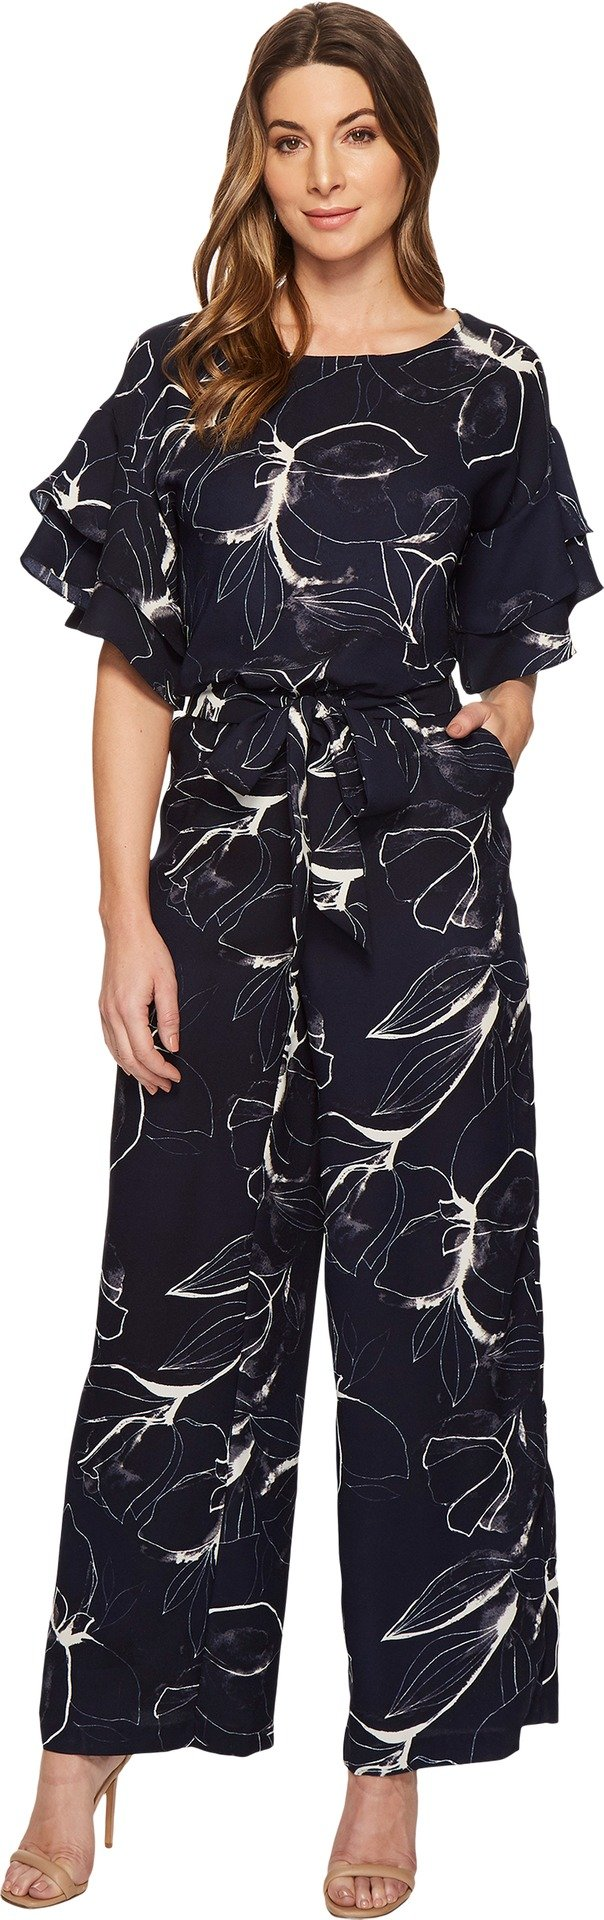 Vince Camuto Womens Ruffle Sleeve Fresco Petals Belted Jumpsuit Night Sky MD One Size